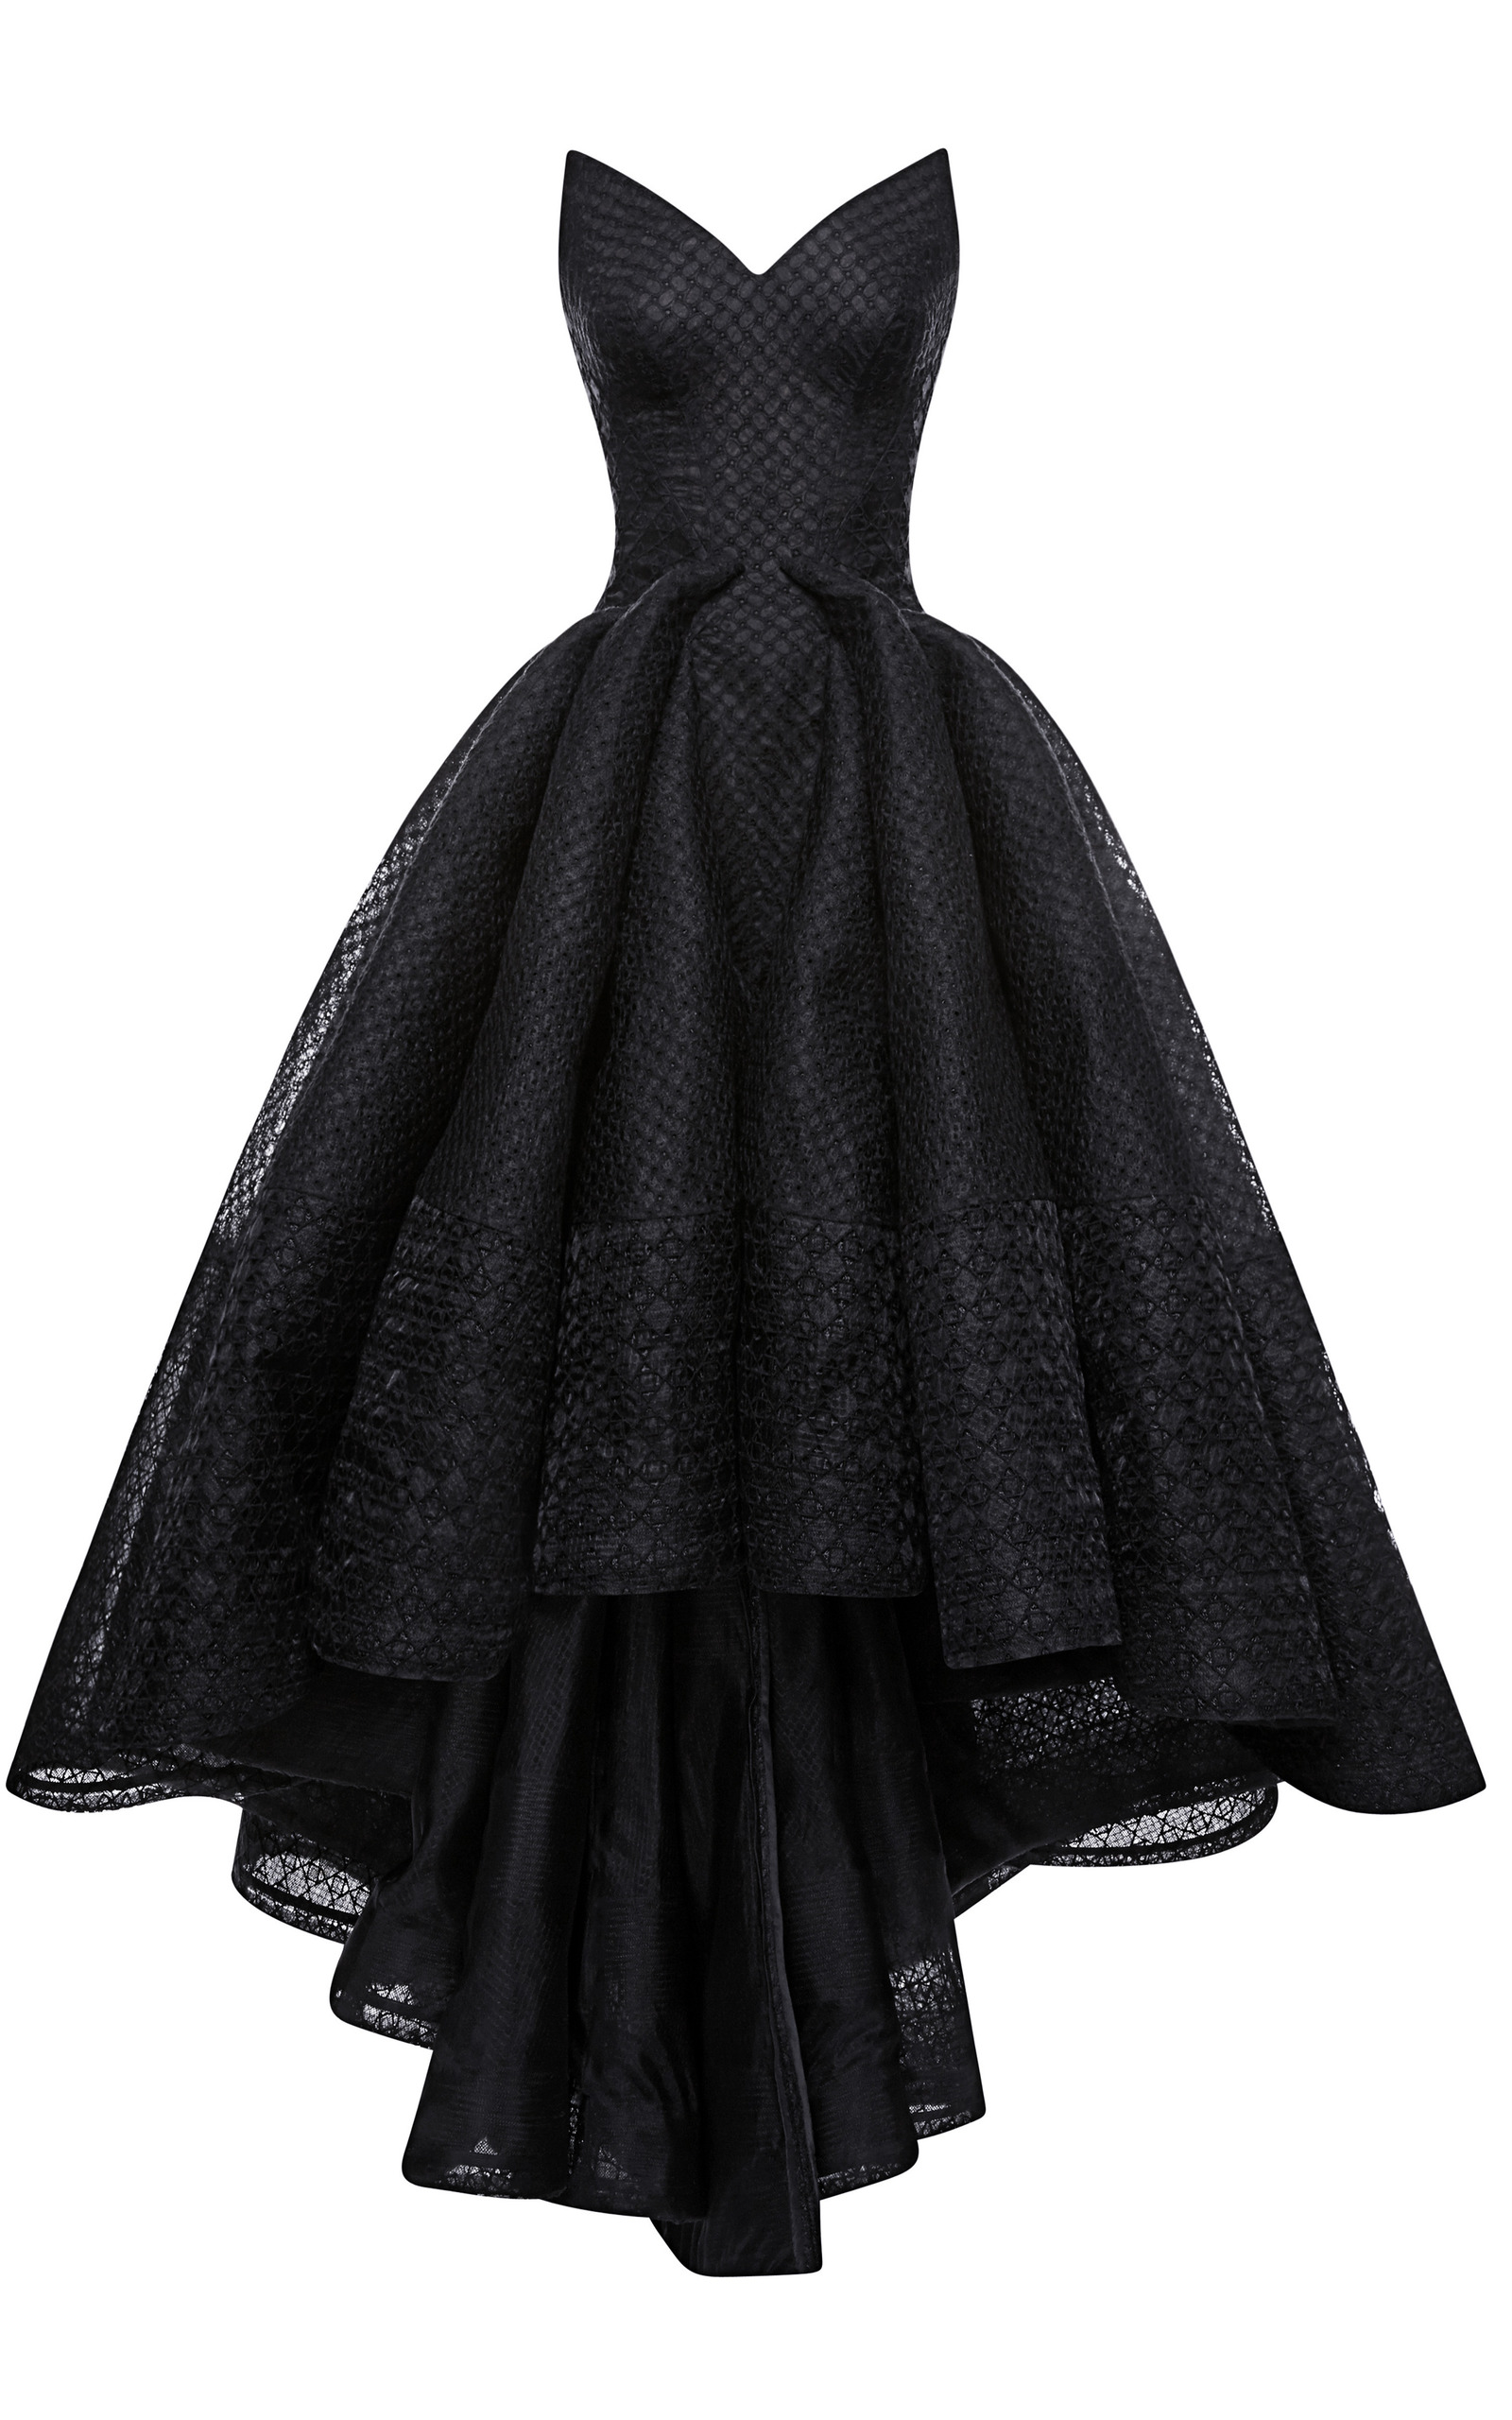 d80ac226c81 Embroidered Organza Gown by Zac Posen